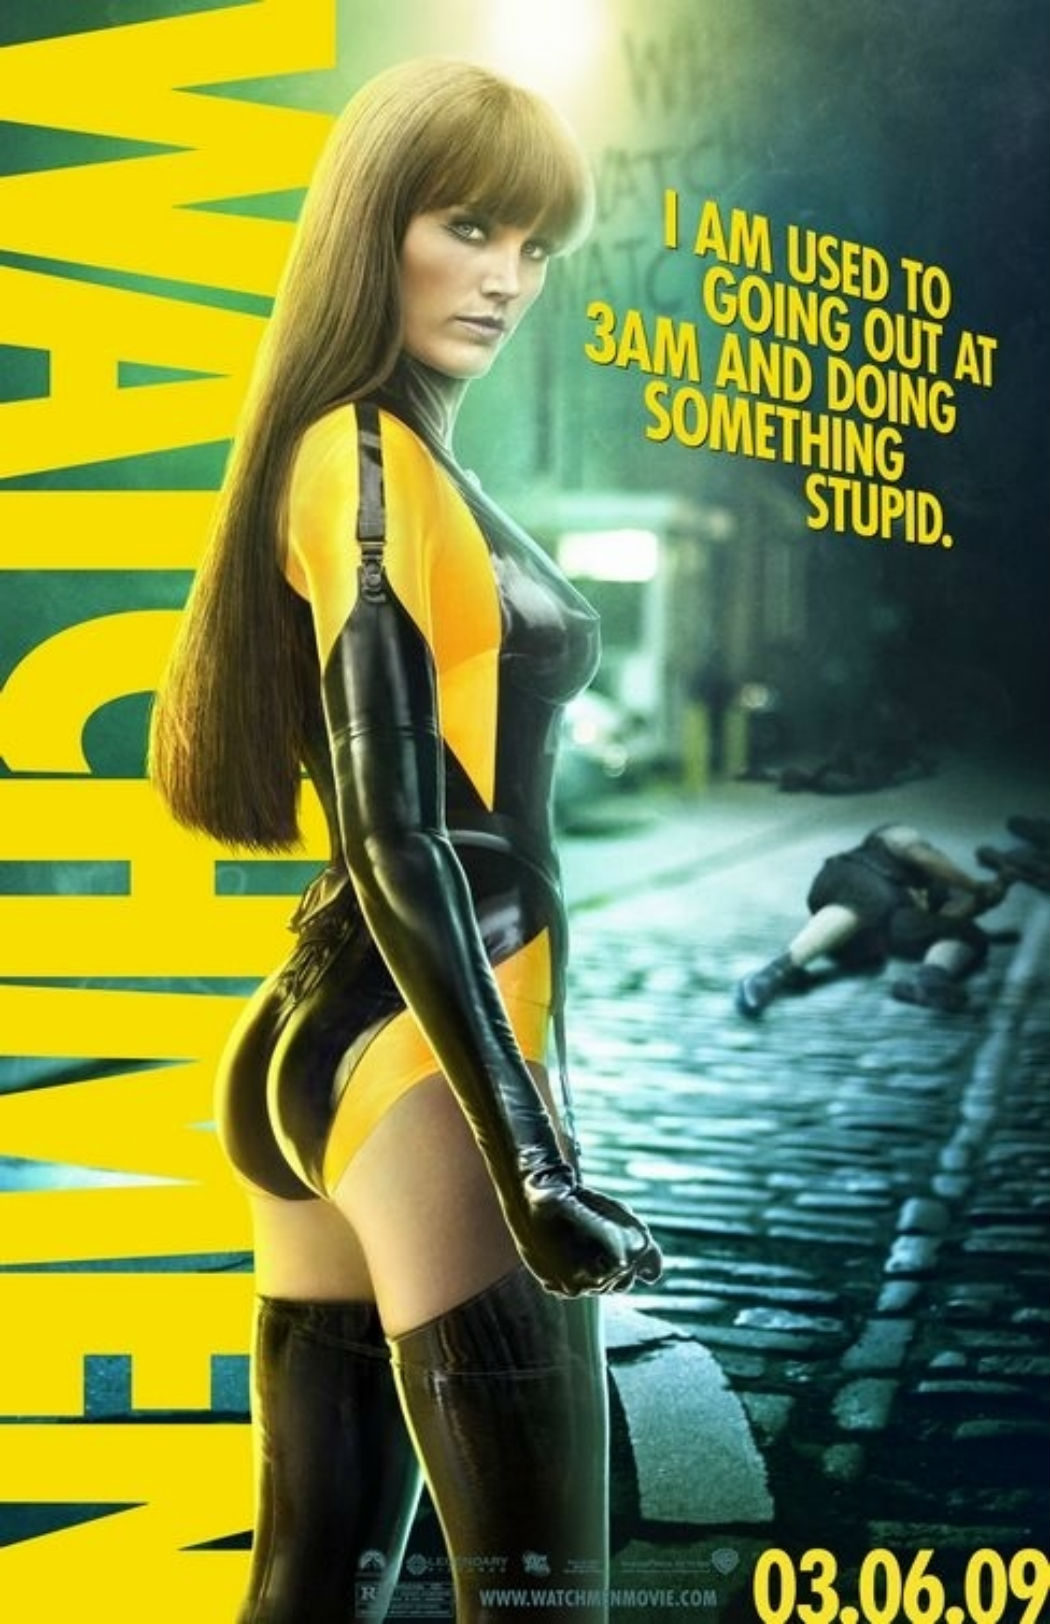 Malin Akerman en 'Watchmen'